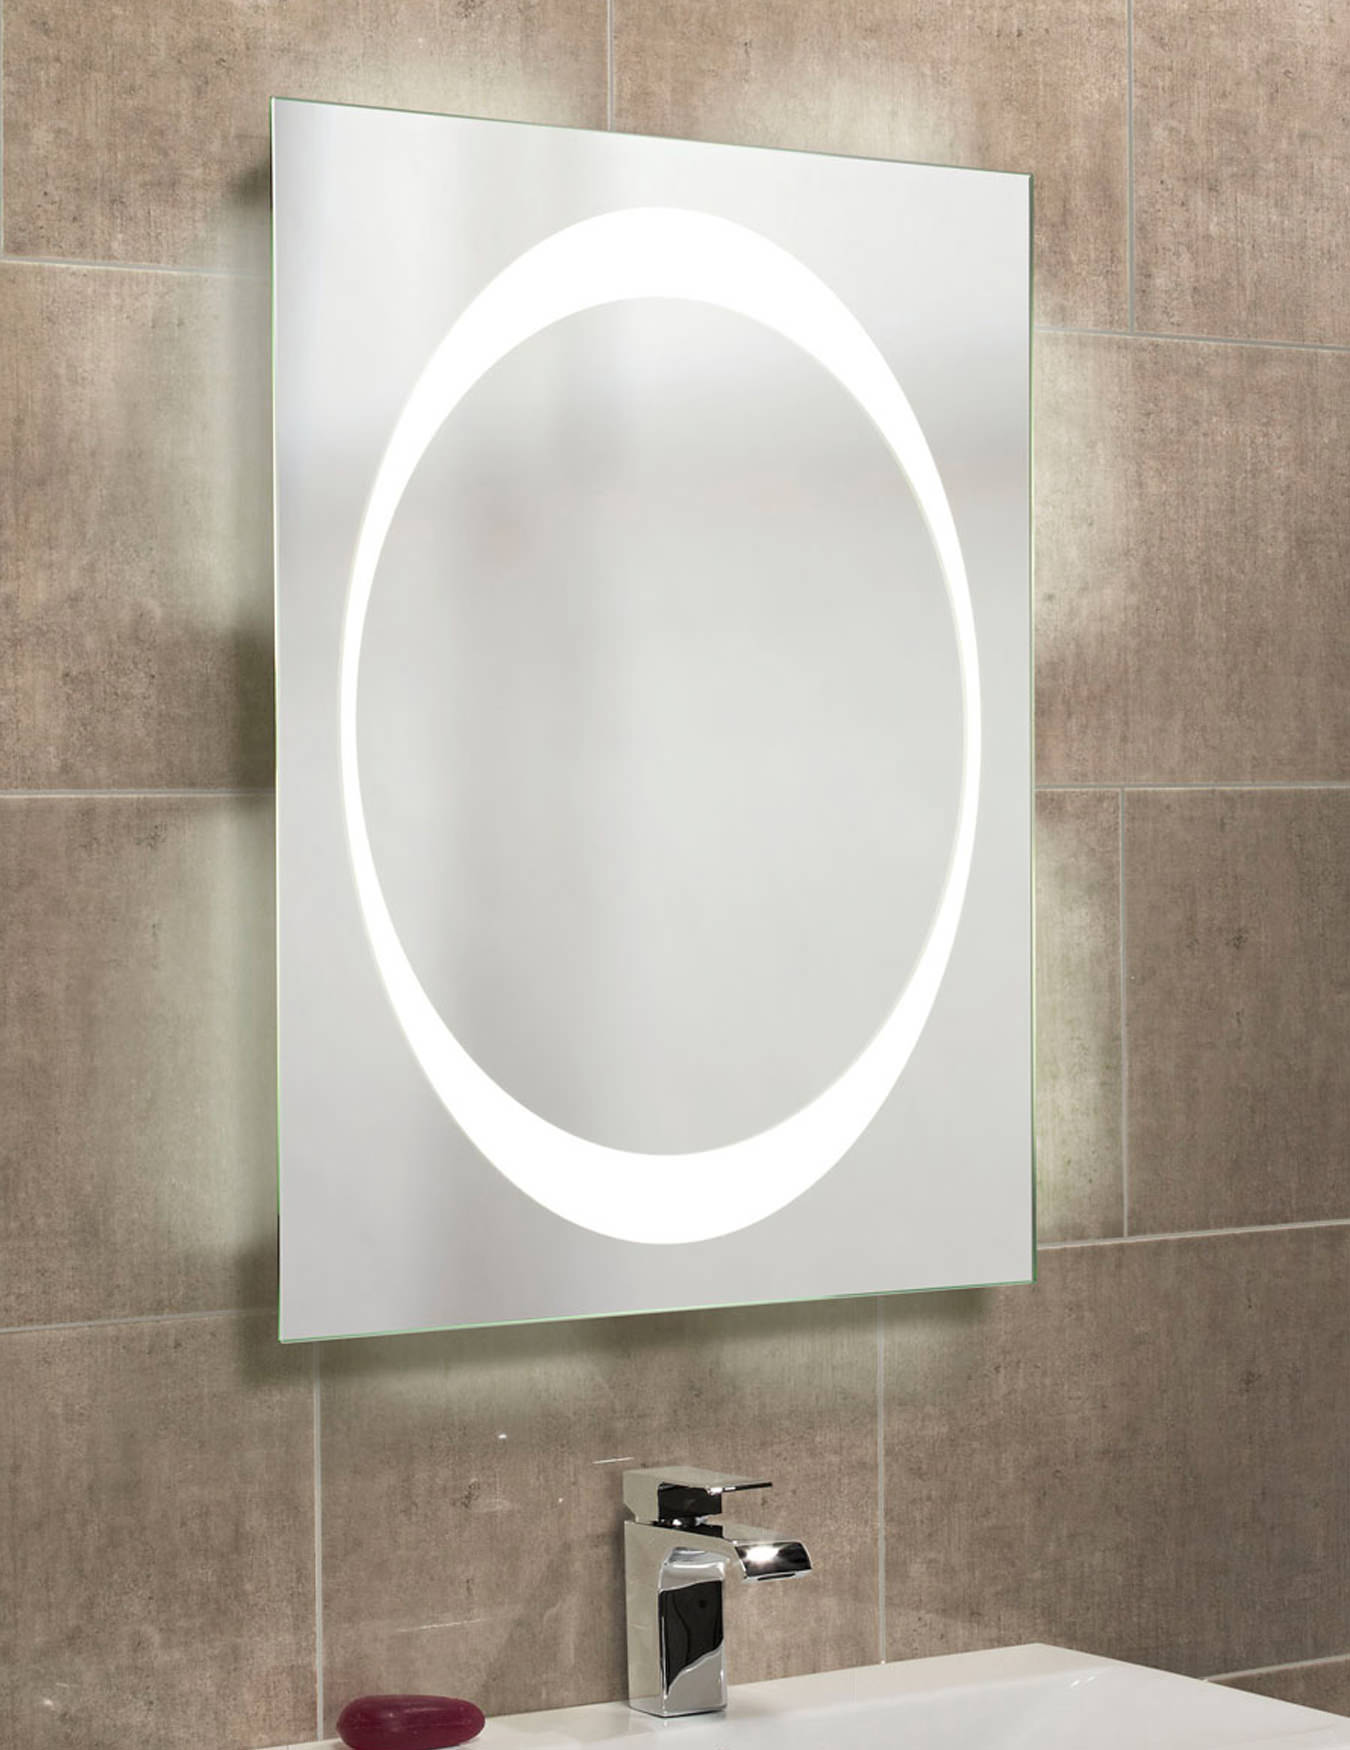 Impressive Illuminated Bathroom Mirrors 1350 x 1750 · 754 kB · jpeg